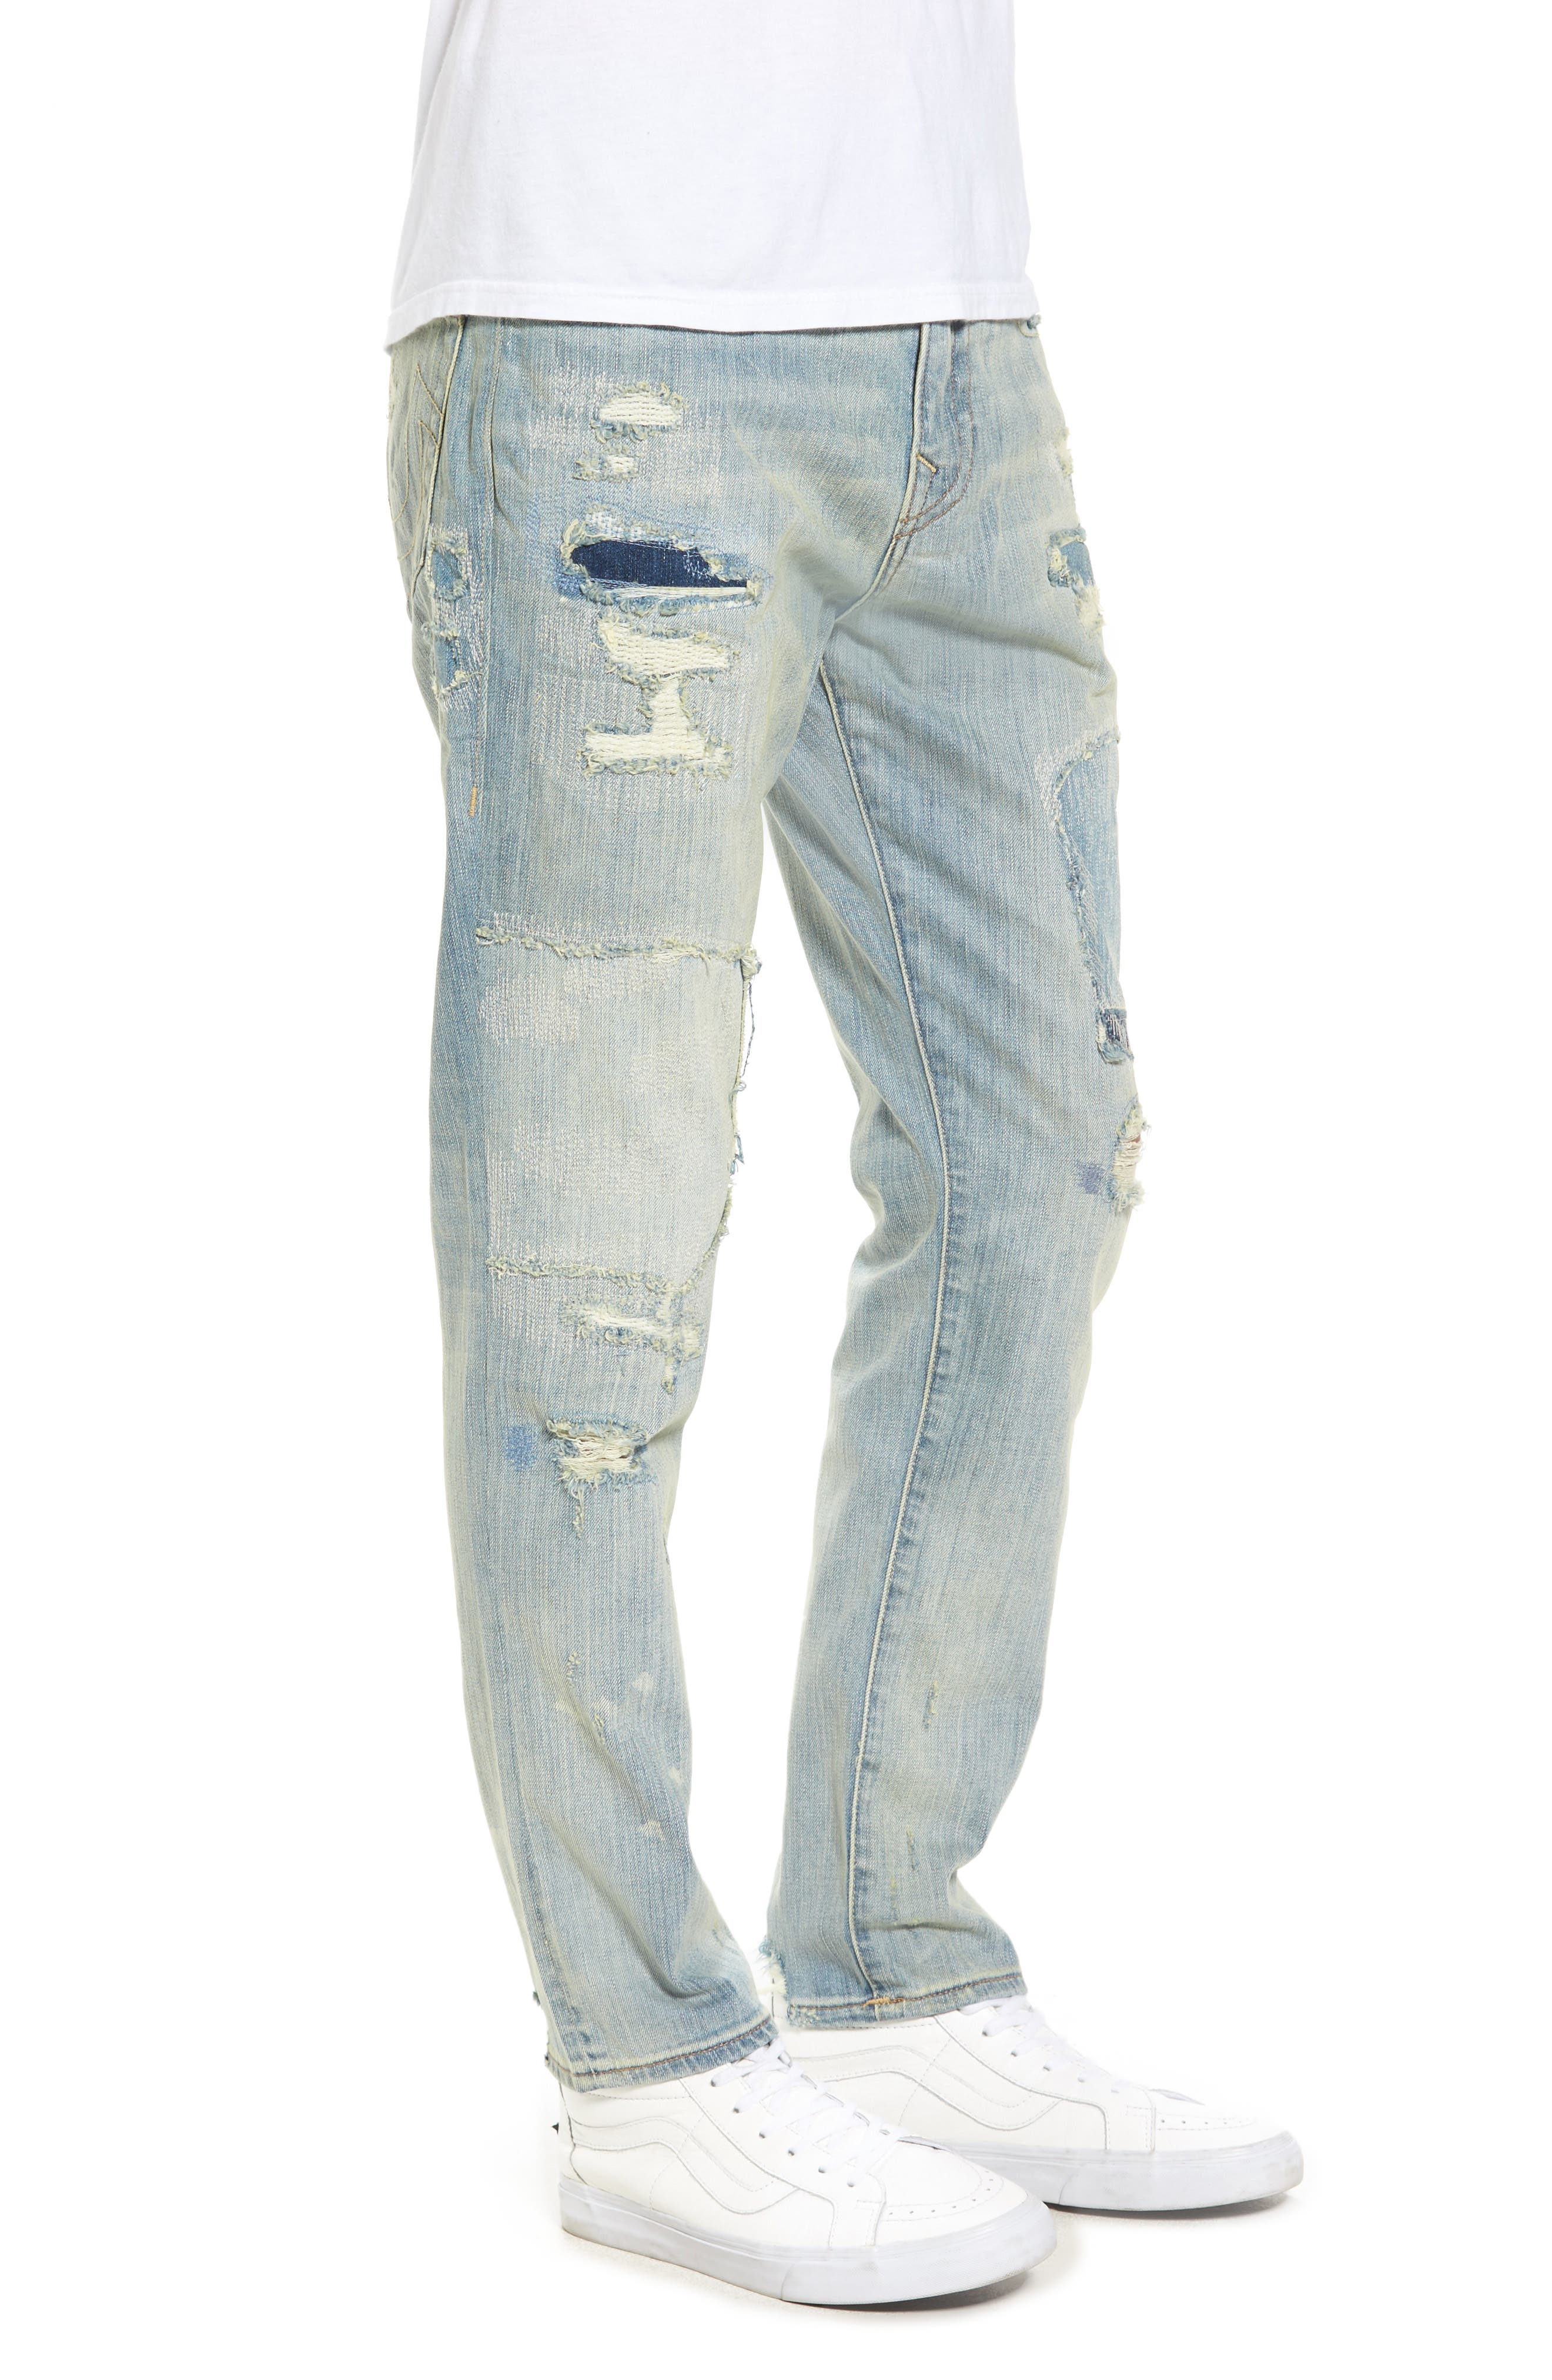 Mick Skinny Fit Jeans,                             Alternate thumbnail 3, color,                             Indigo Immortal